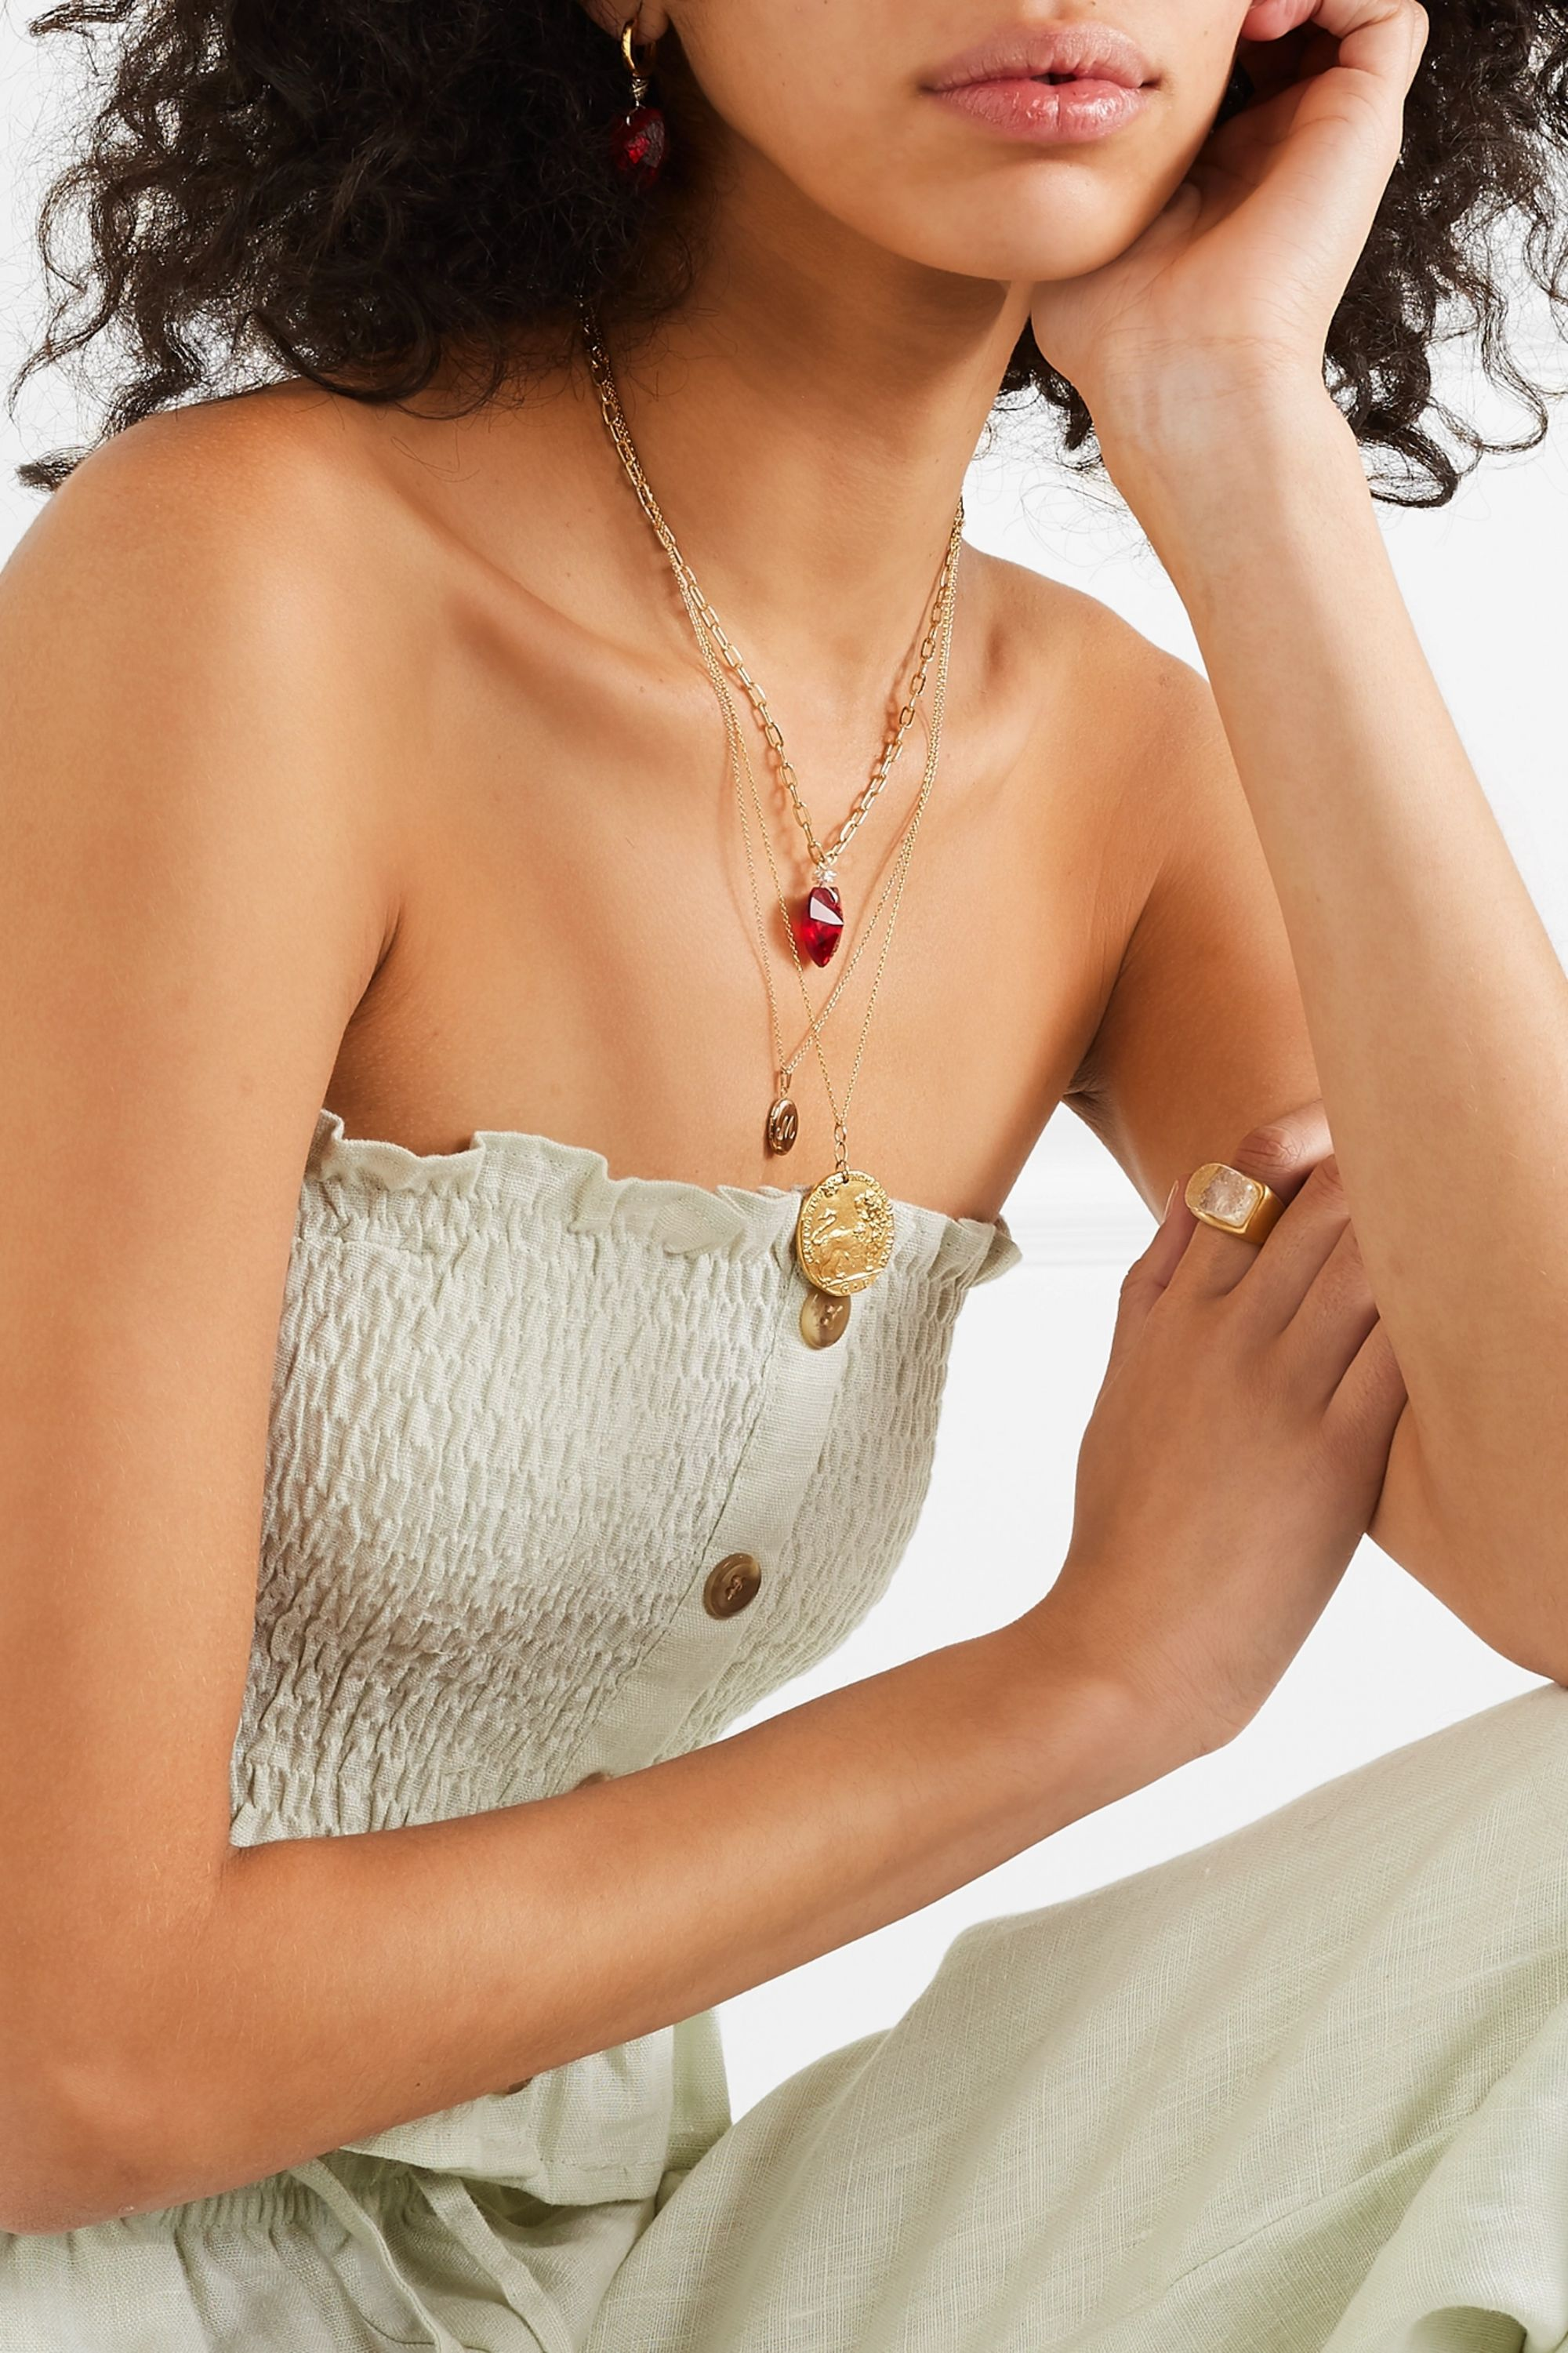 WALD Berlin Sweet Love gold-plated, crystal and pearl necklace